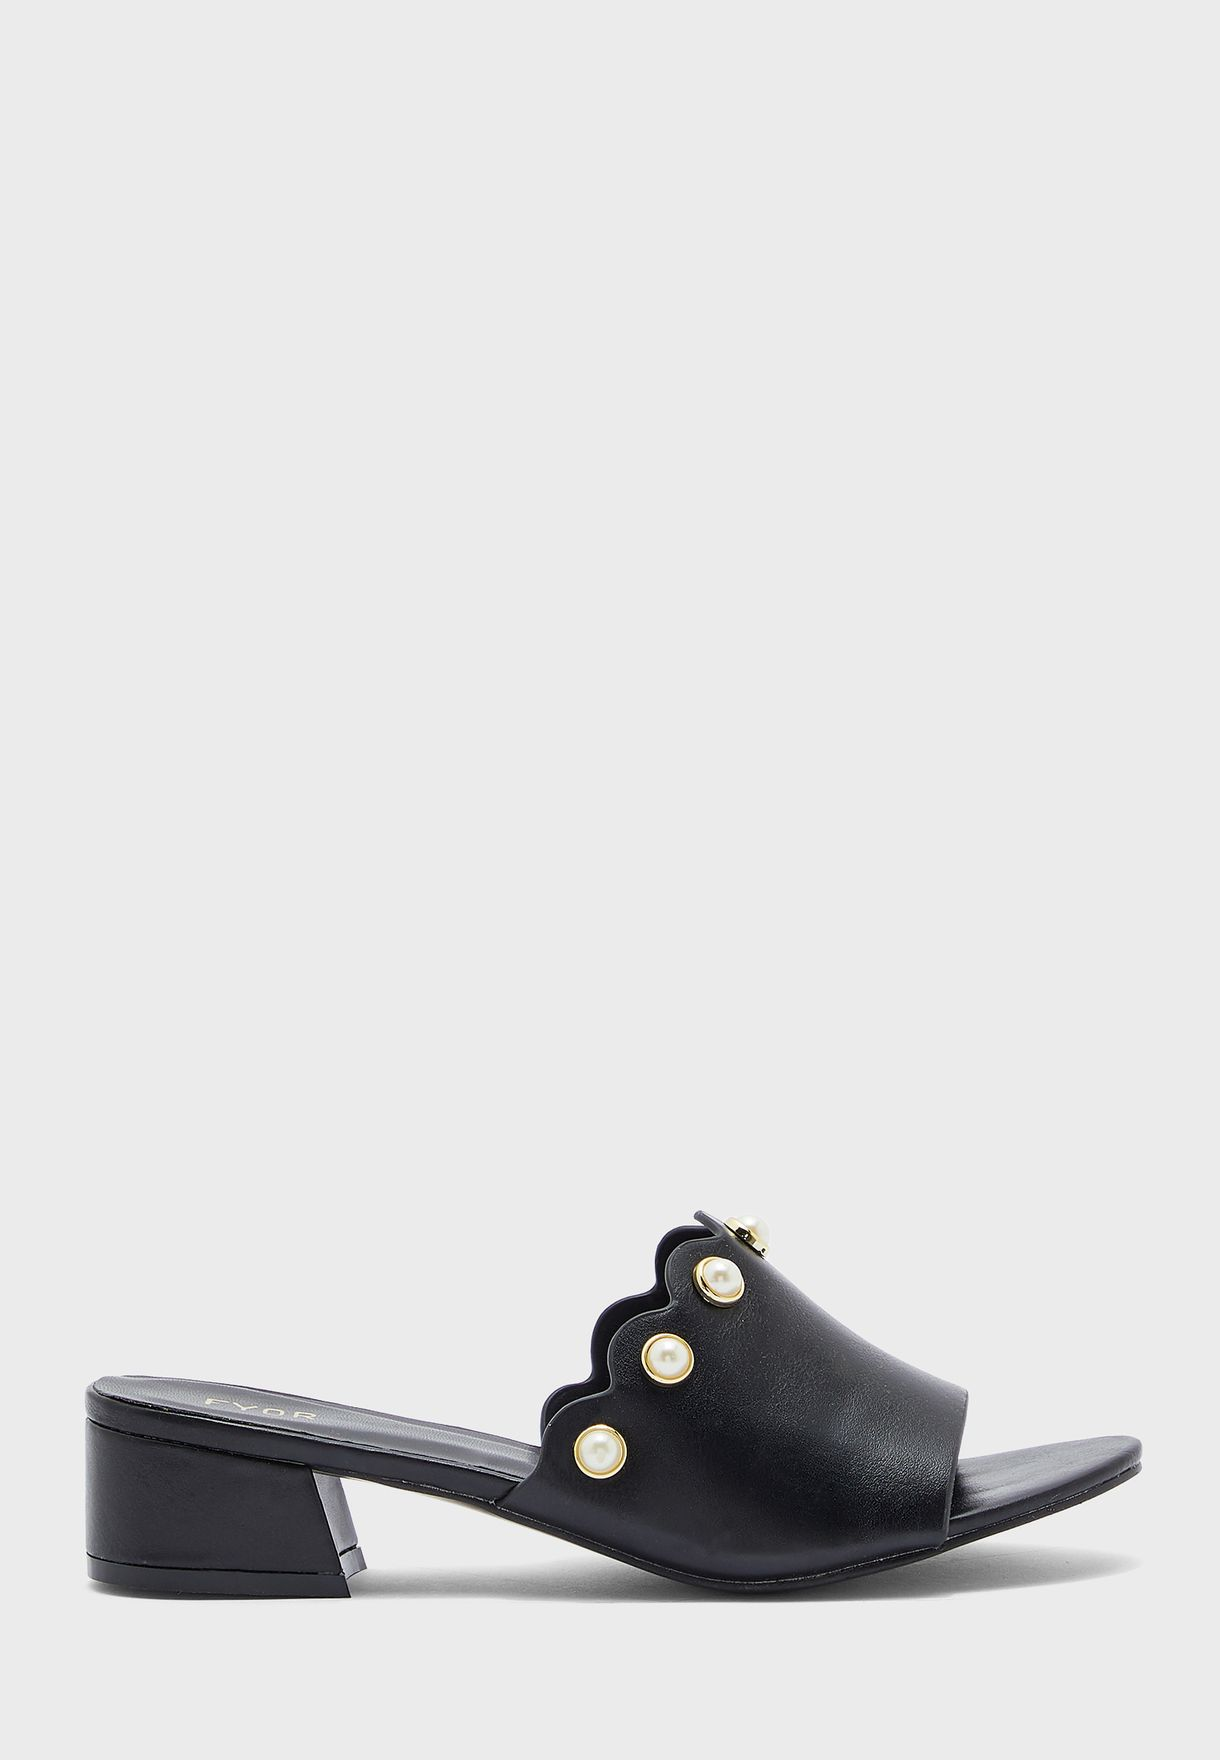 Cut Out Low Heel Sandals